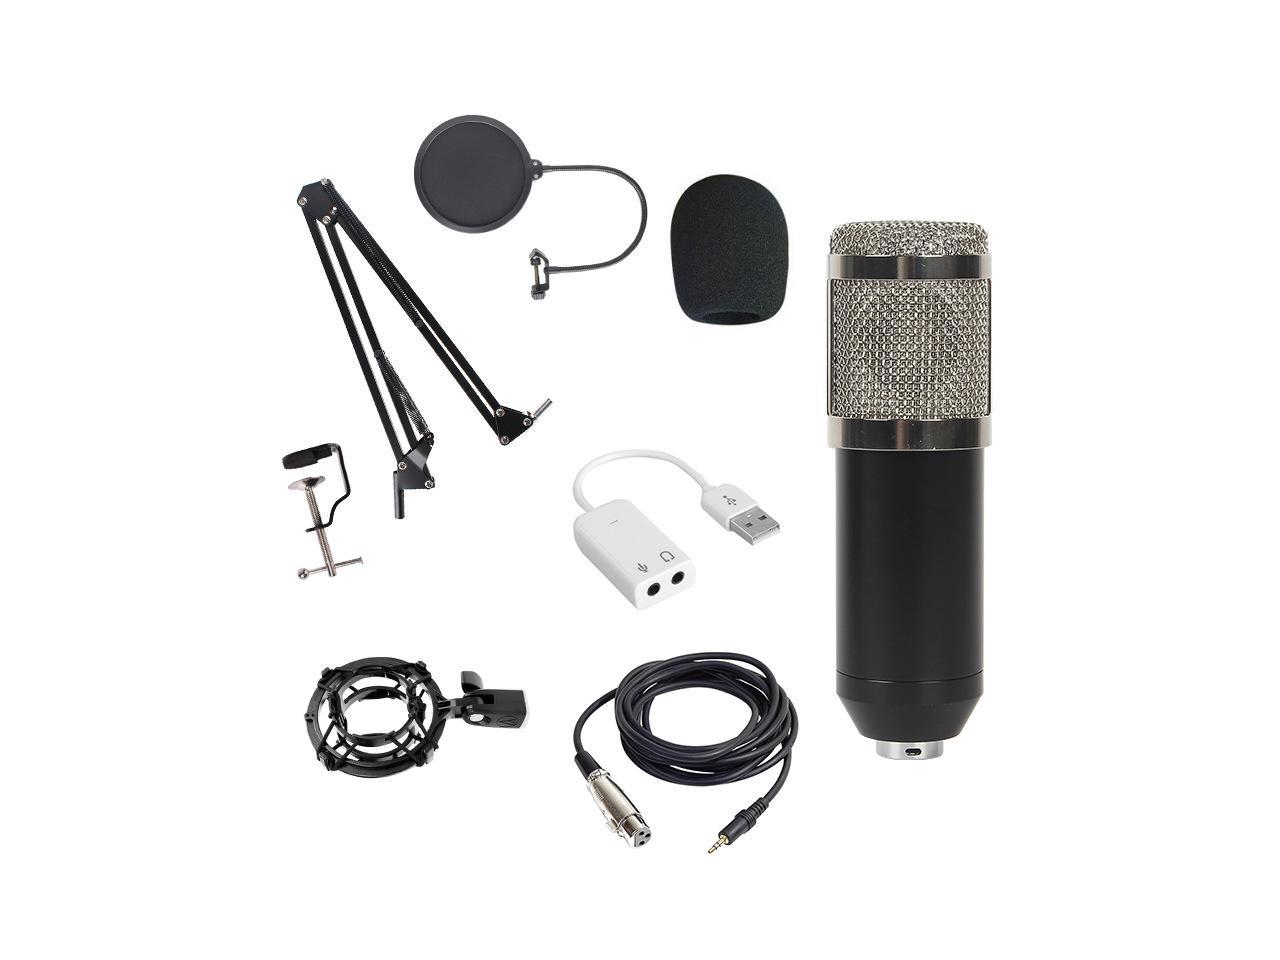 ☀️NEW Lego Band Music MICROPHONE Black Gold /& Silver 3 PACK Vocal Singer Band